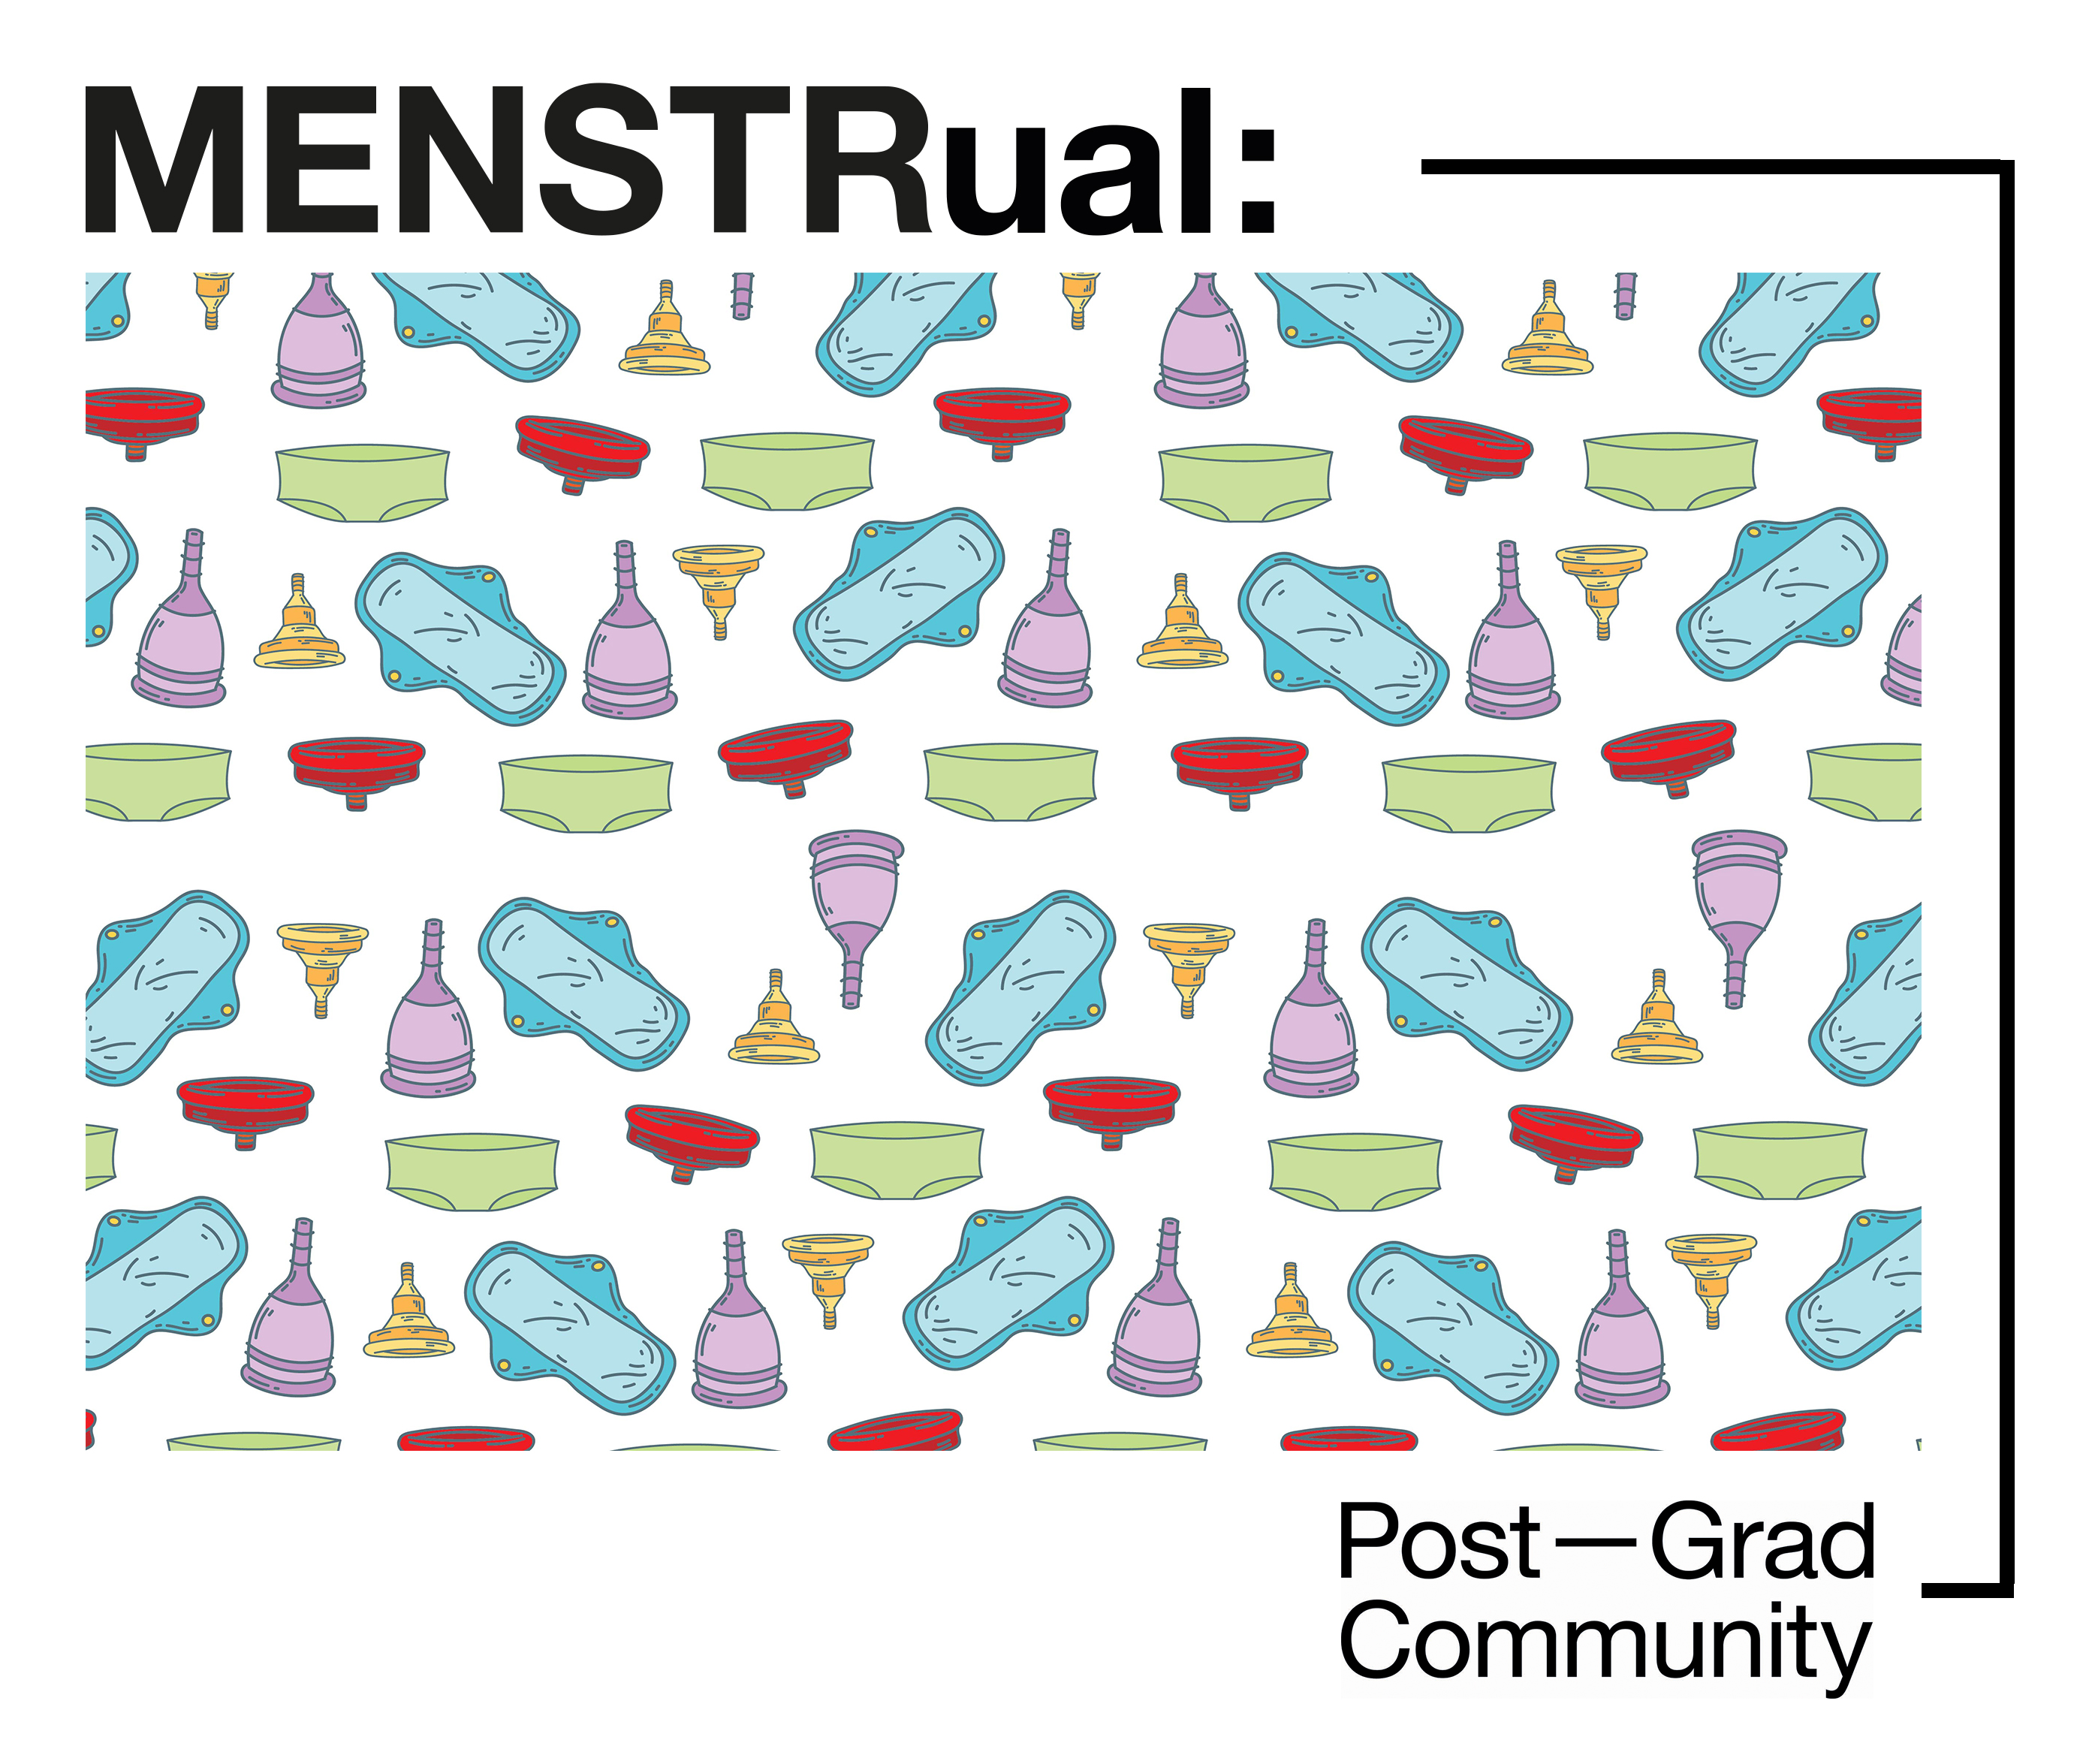 illustration with menstrual products